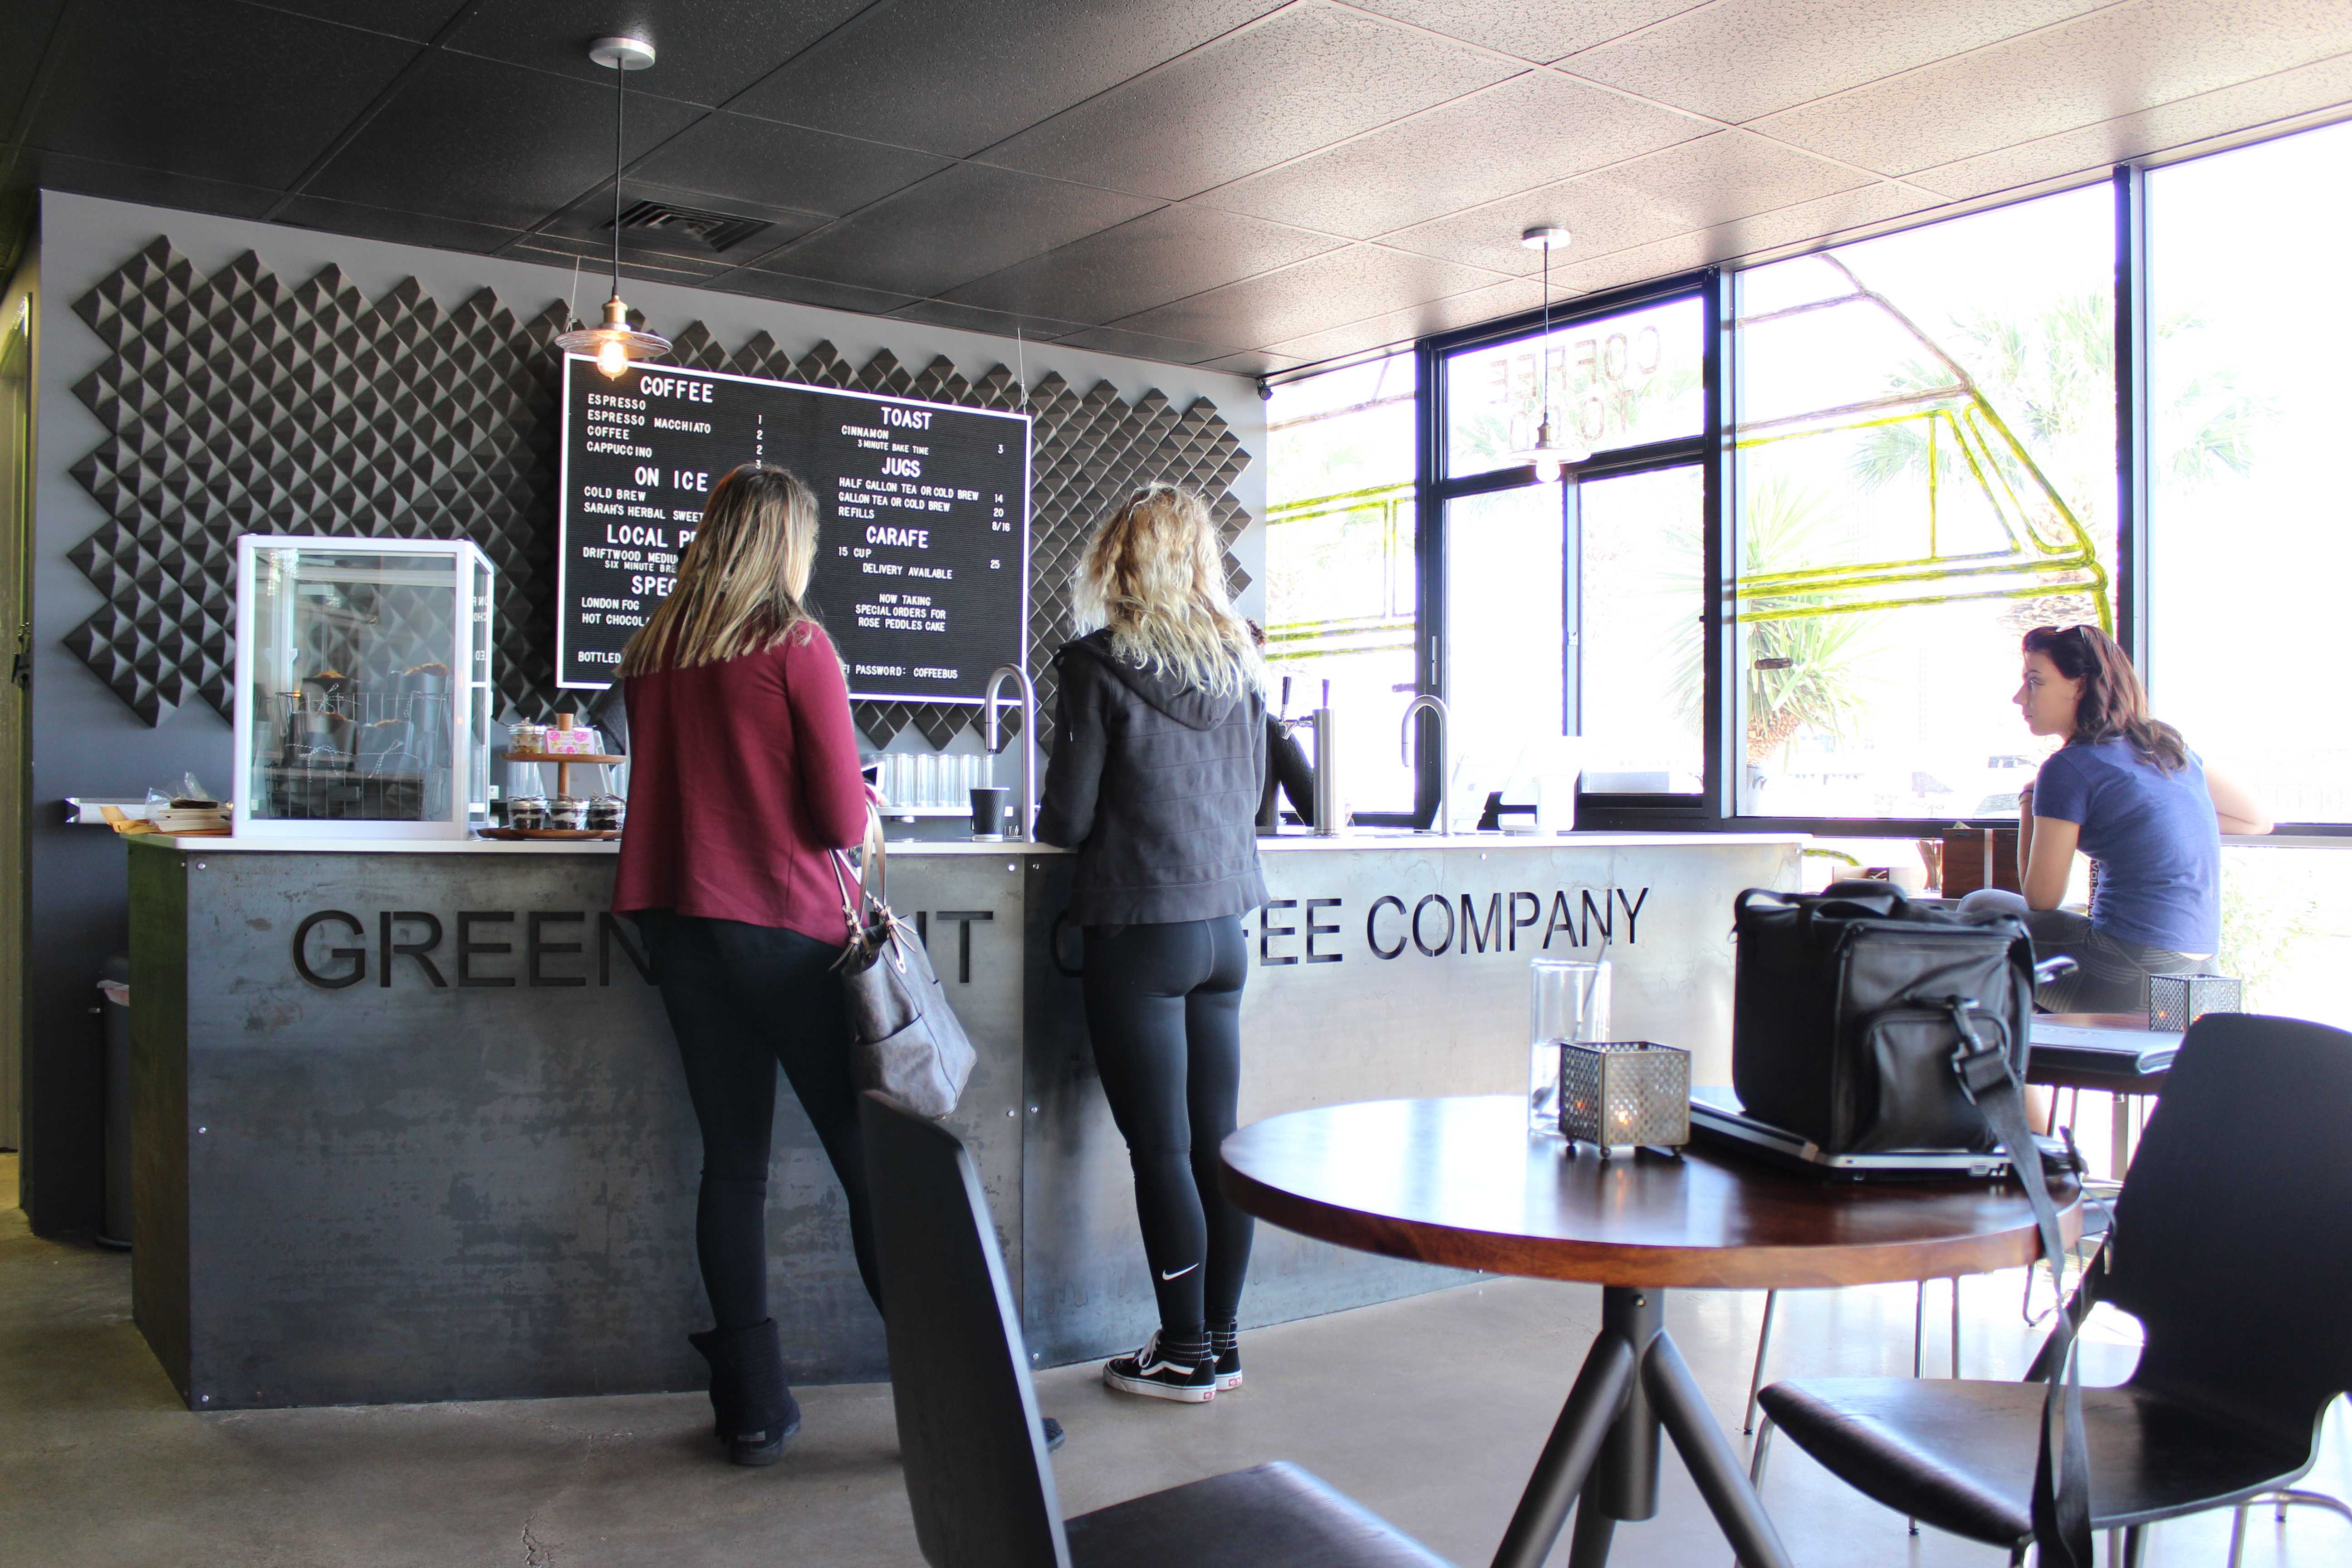 Green means go for new coffee shop